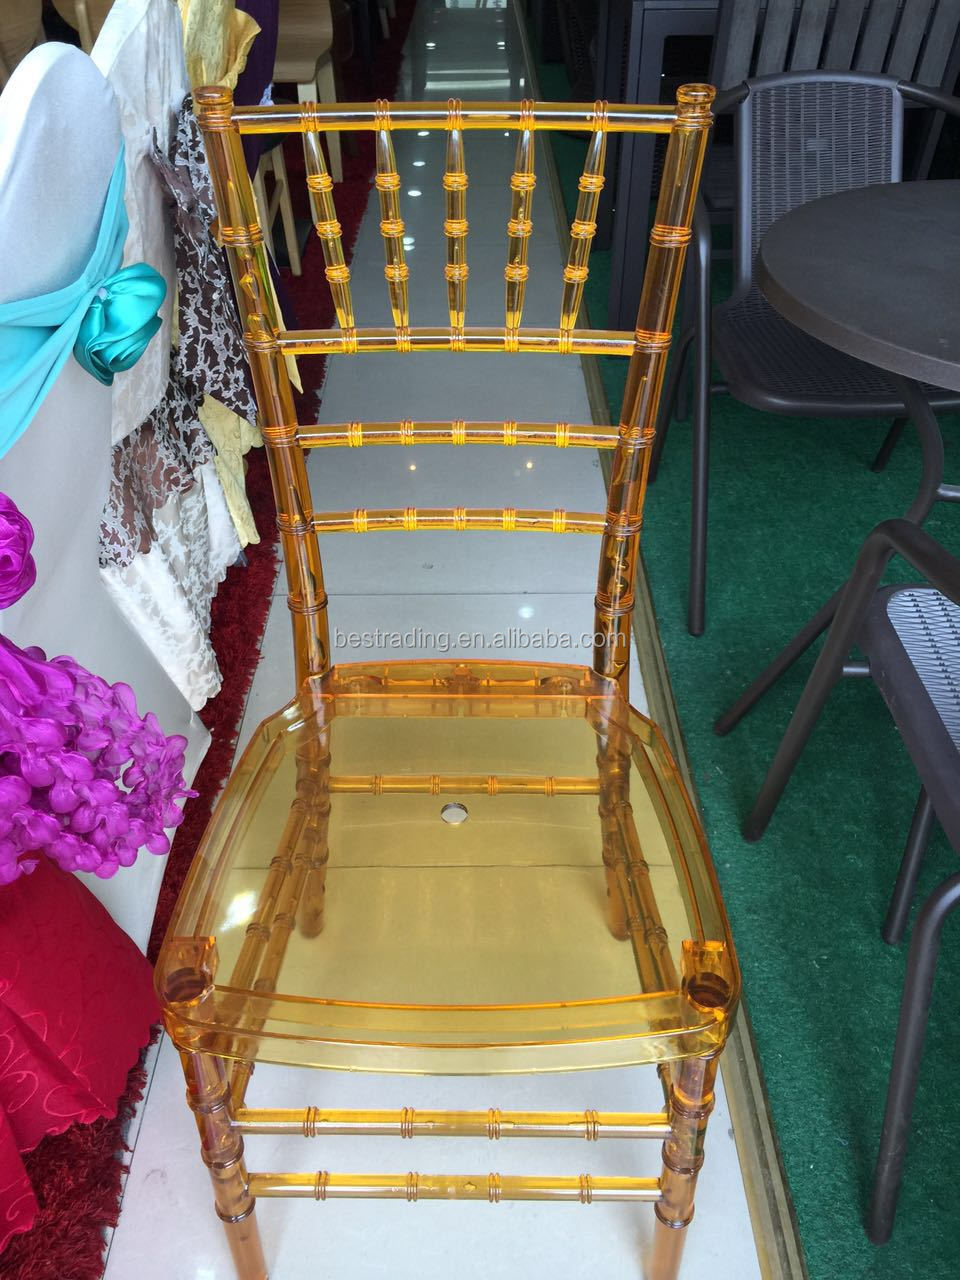 hot sale hotel banquet resin wedding chiavari chair for event party